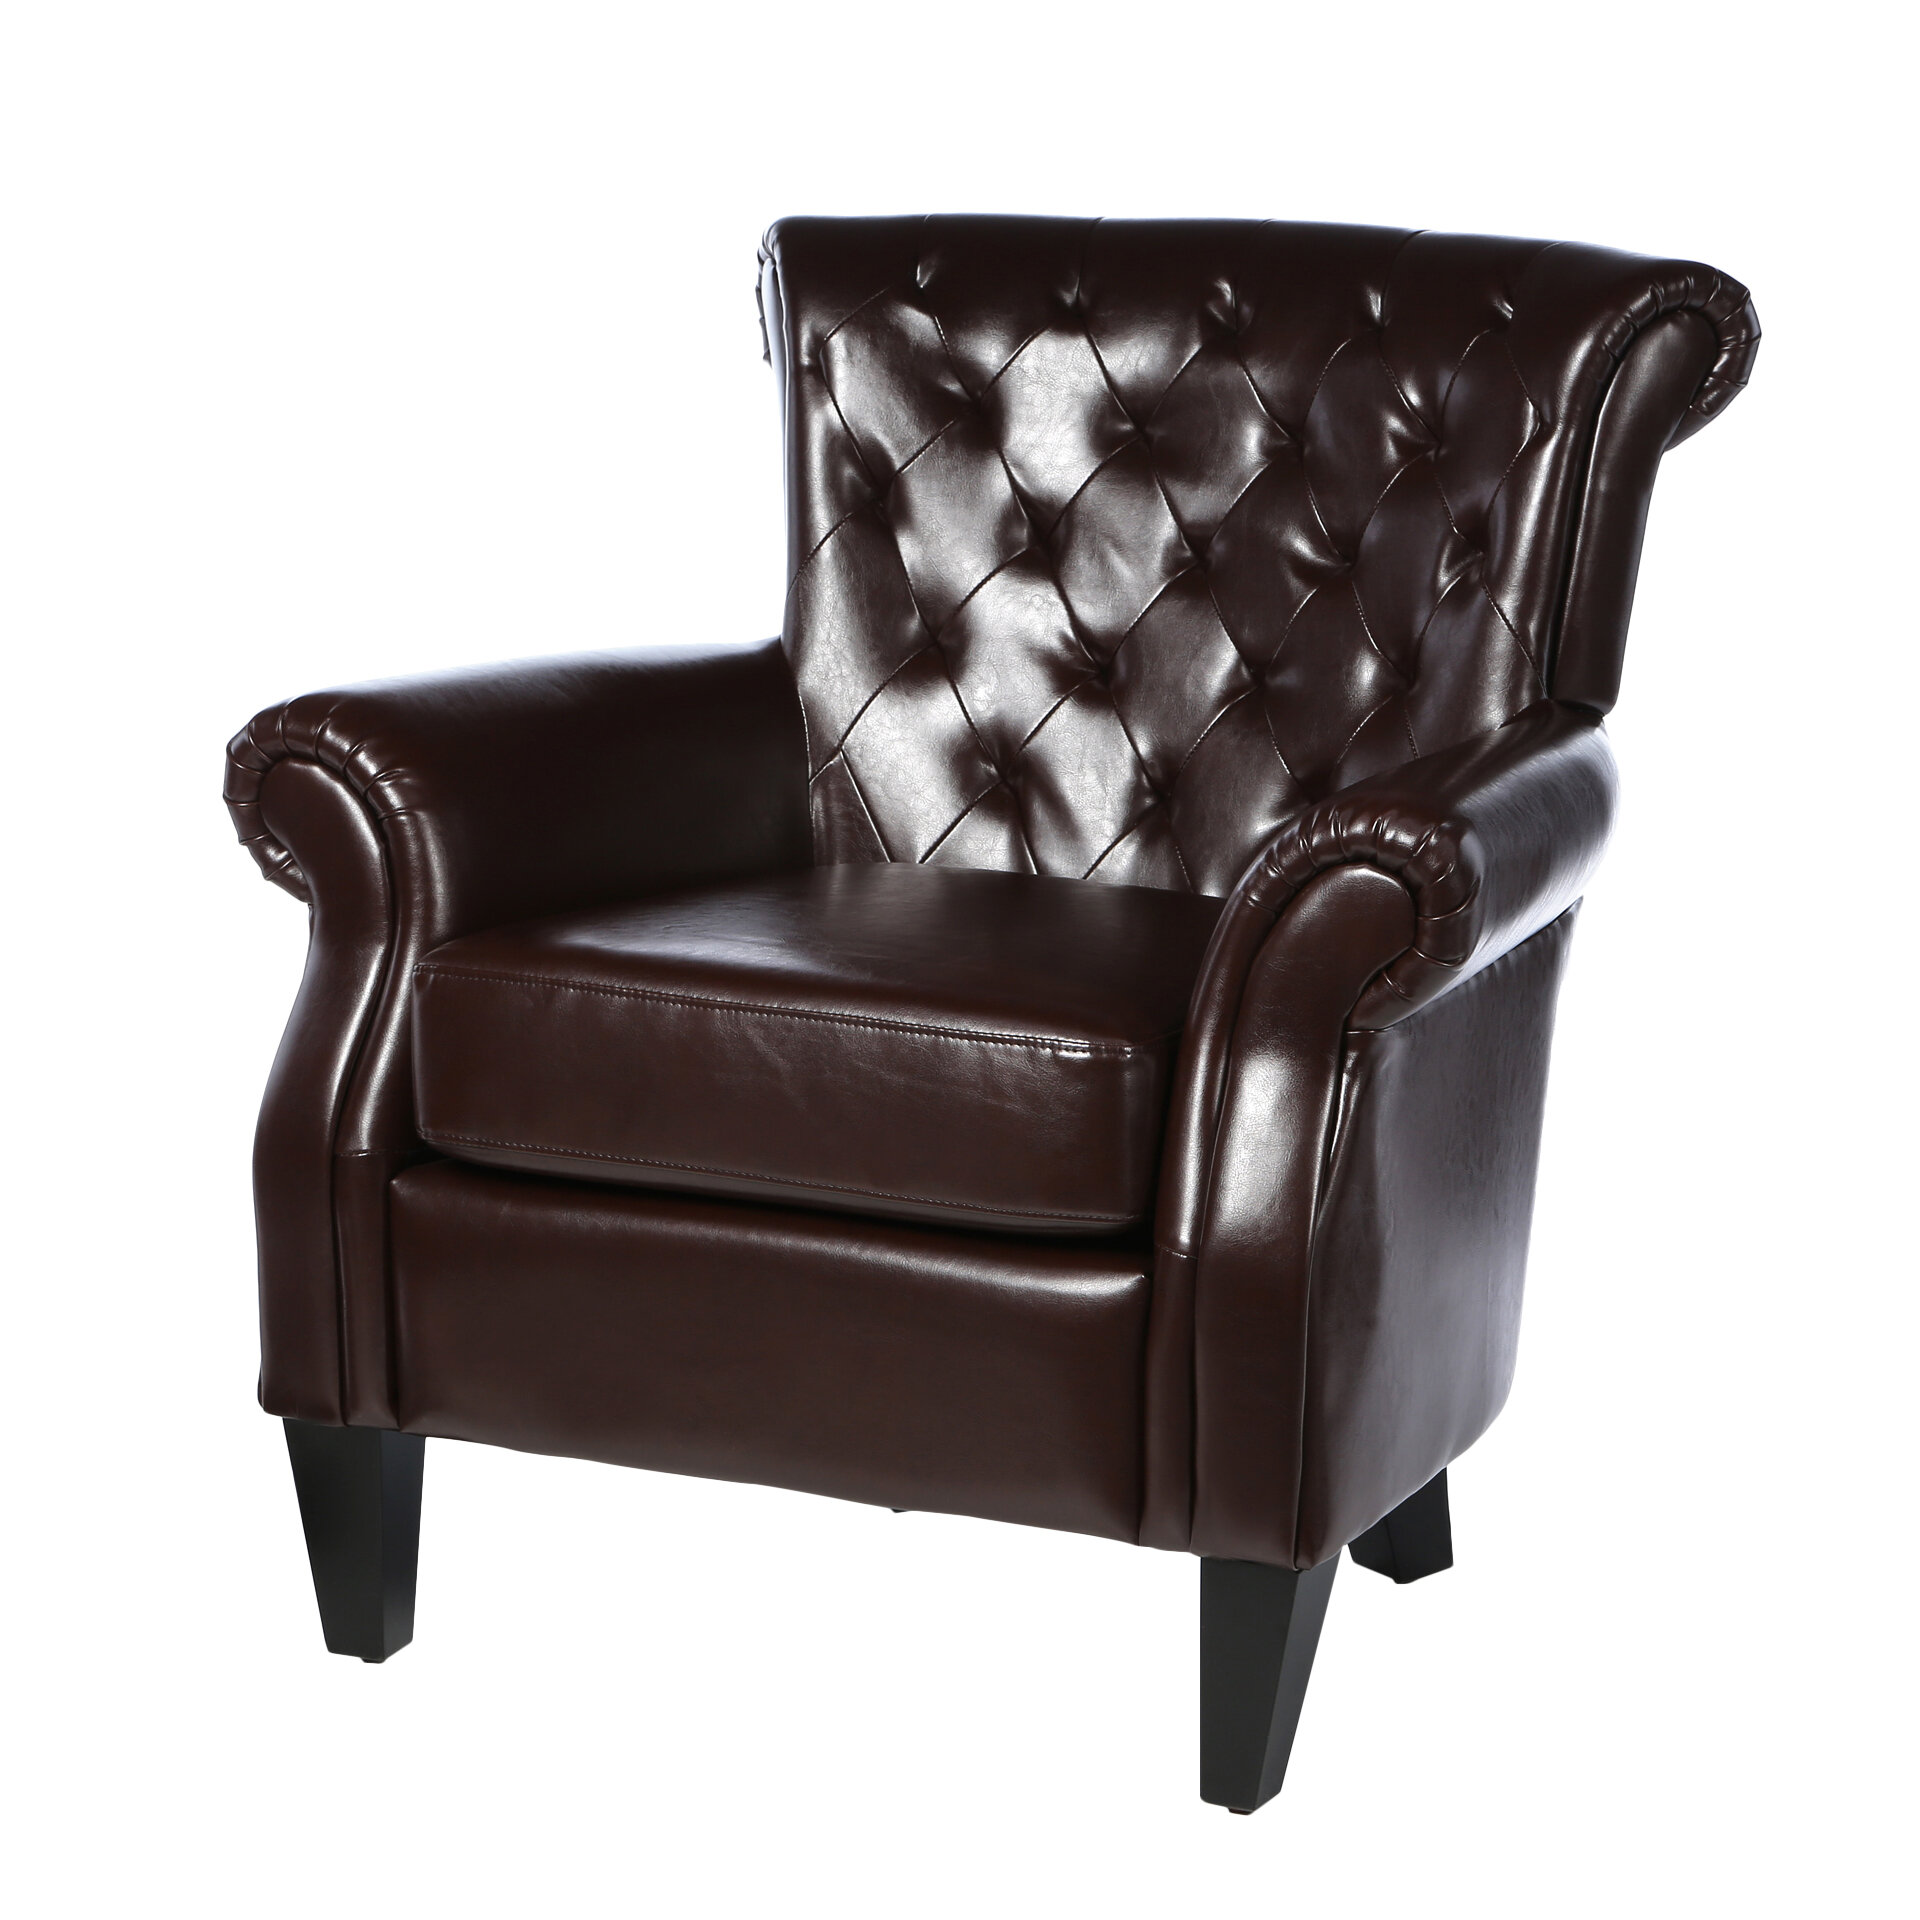 Etonnant Home Loft Concepts Mcclain Tufted Upholstered Club Chair U0026 Reviews | Wayfair